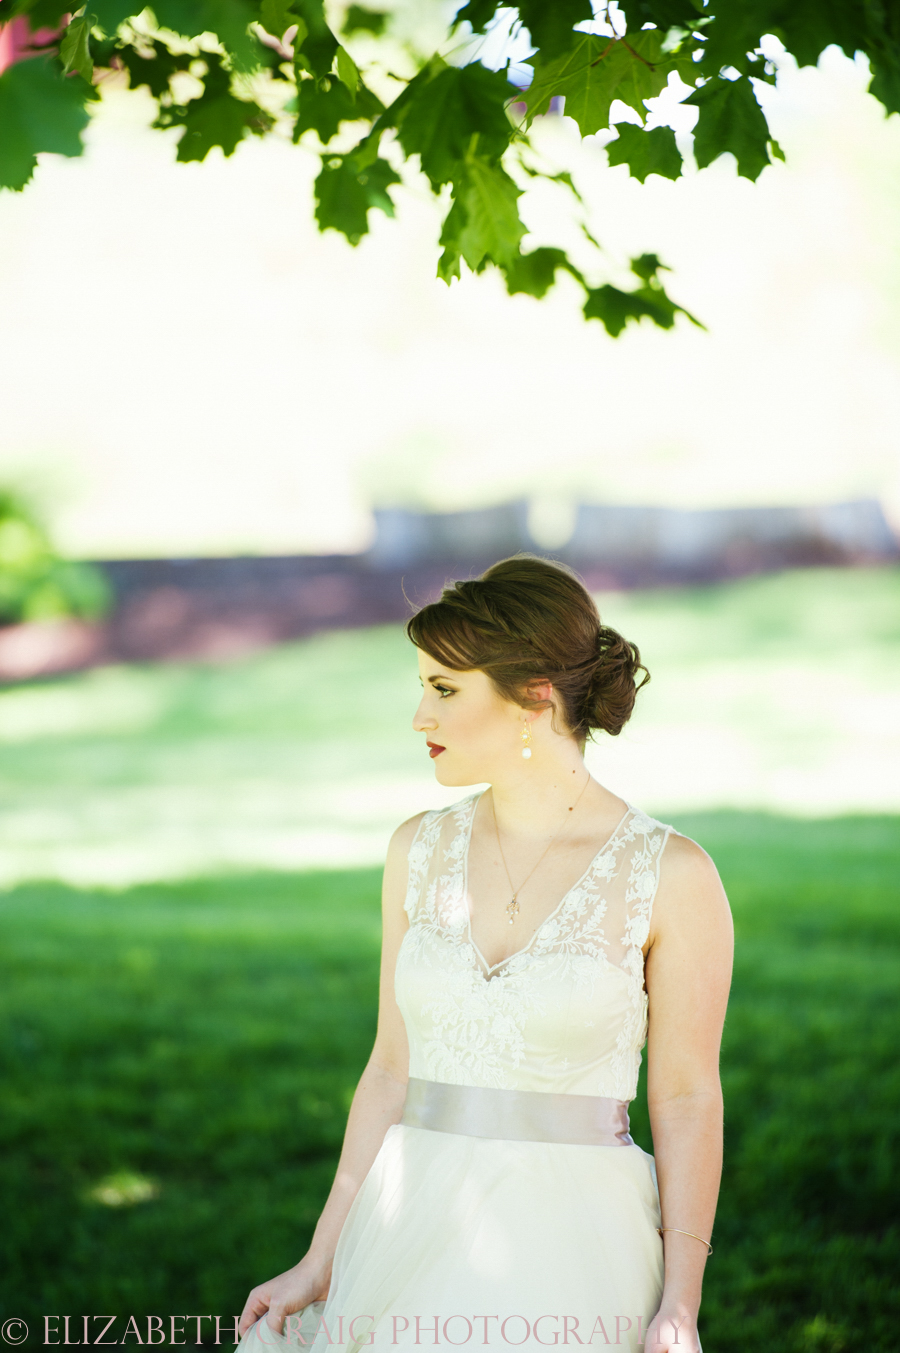 Shady Elms Farm Weddings and Receptions Elizabeth Craig Photography-0045